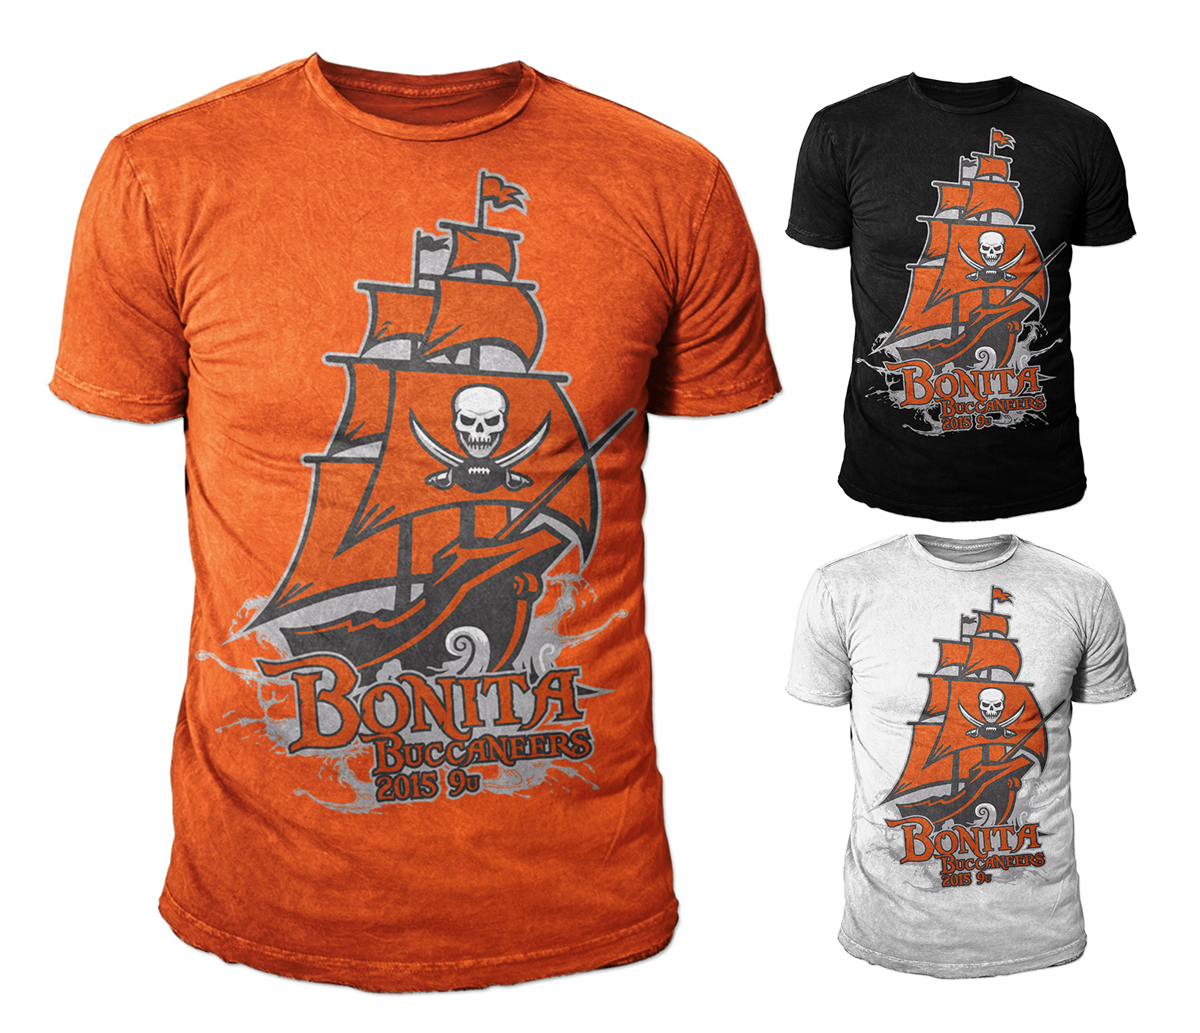 T shirt design youth - T Shirt Design Design 6097190 Submitted To Bonita Buccaneers Youth Football Shirt